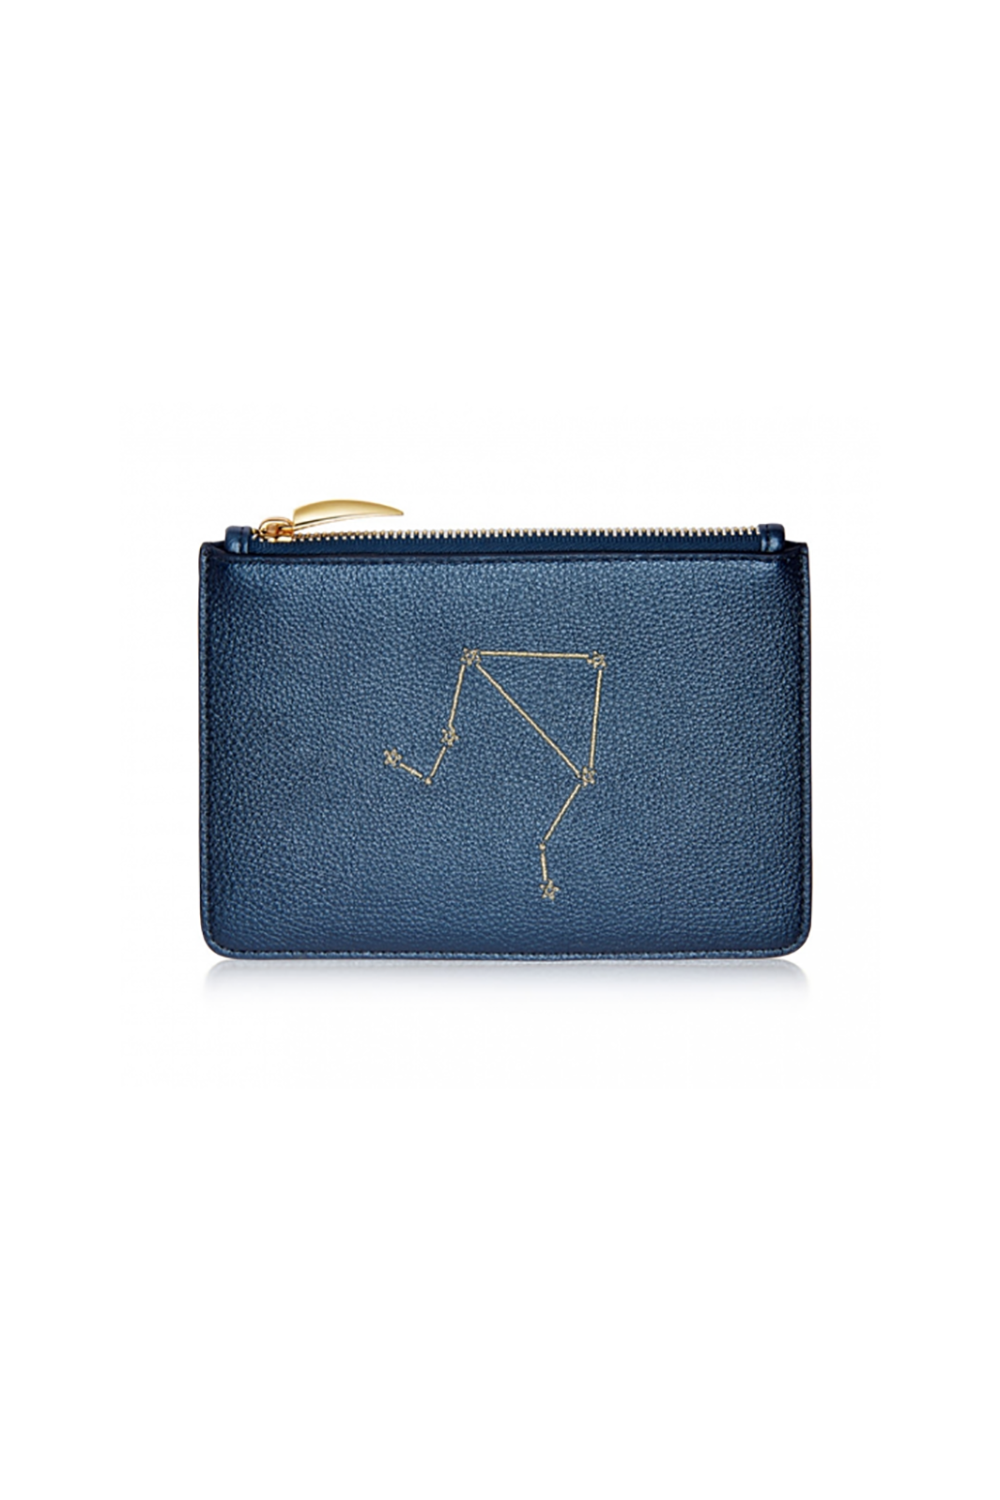 Libra Constellation Pouch Missoma $77.00 SHOP IT Social libras will appreciate this on-the-go vegan leather constellation pouch—available for all 12 signs—to throw in knick-knacks like hair ties, tampons, and credit cards.